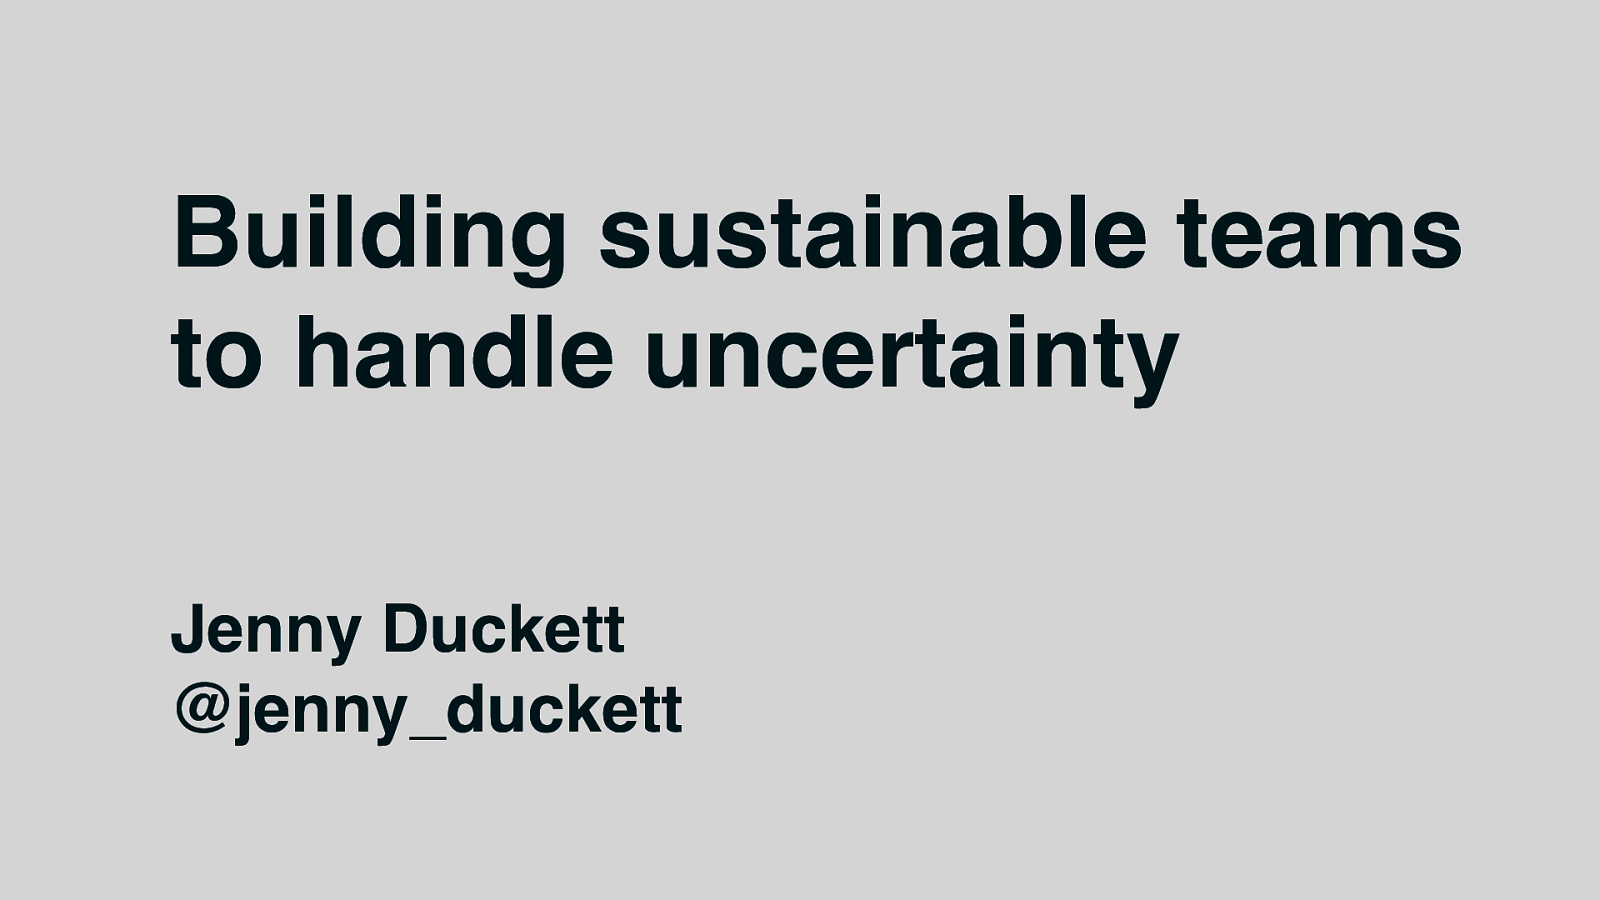 Building sustainable teams to handle uncertainty by Jenny Duckett